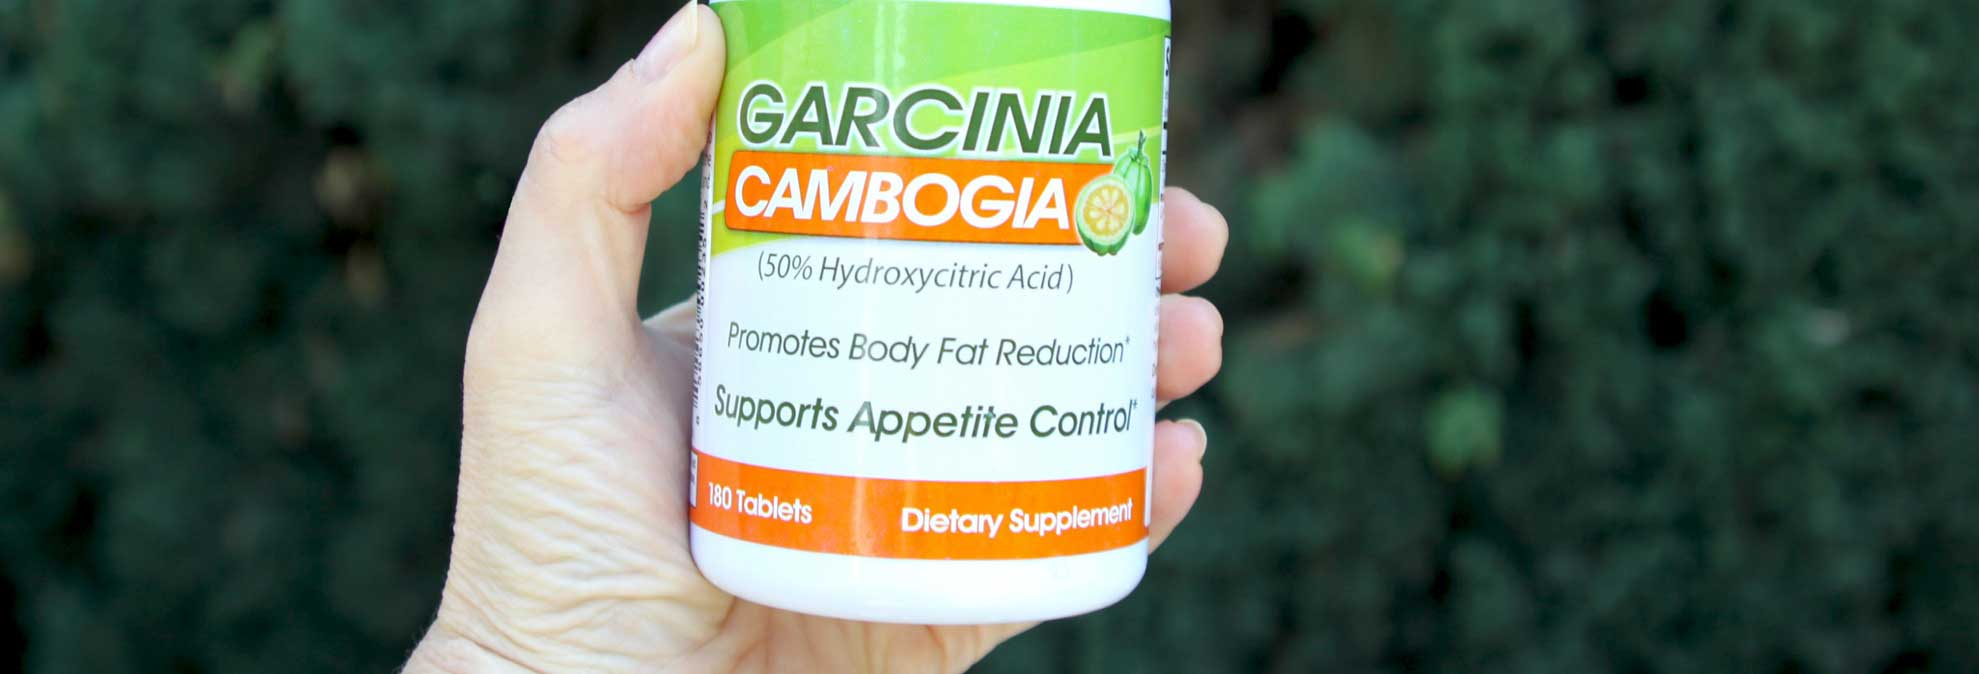 troubling new potential garcinia cambogia side effect consumer reports